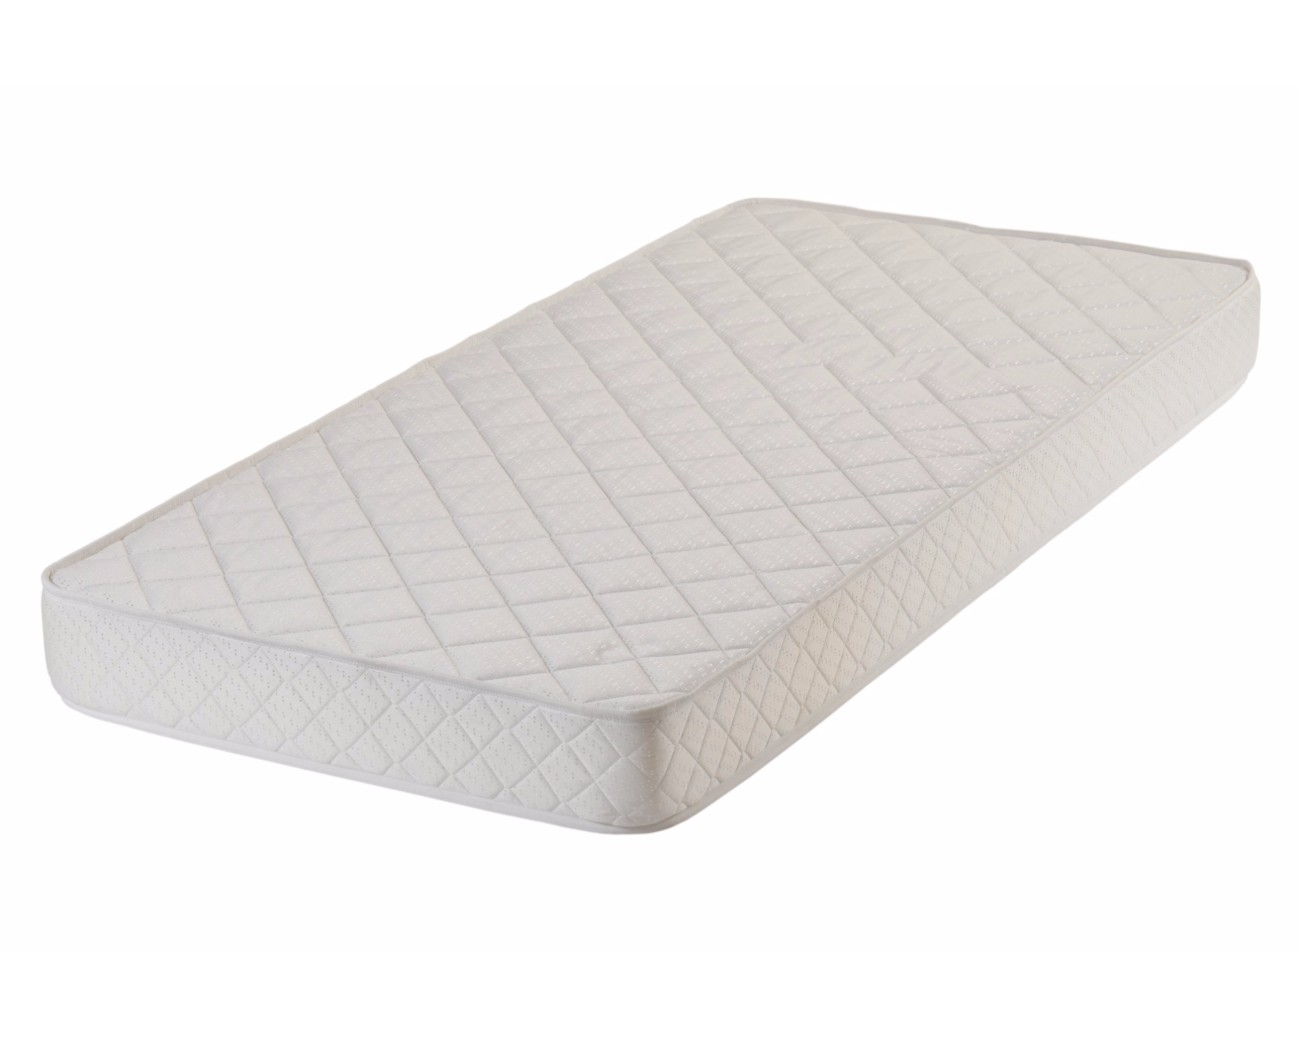 thumb_relyon_dream_support_full_mattress_cutout_relyon_2014